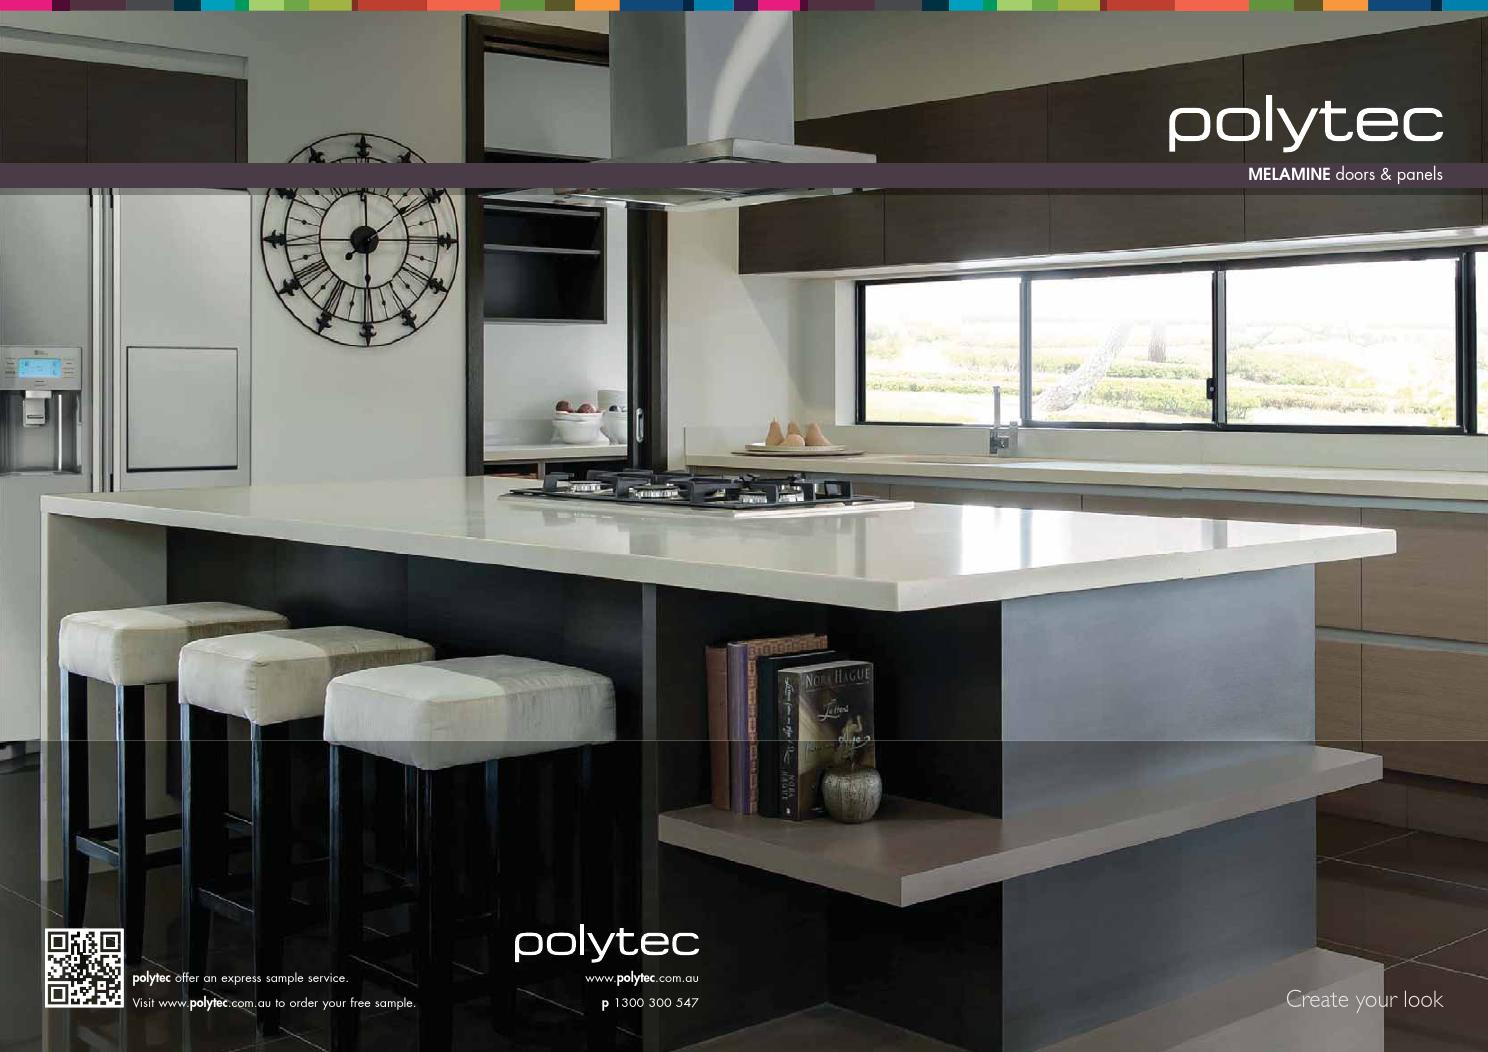 & Polytec mlamine brochure web 1411474849 by Grendesign - issuu